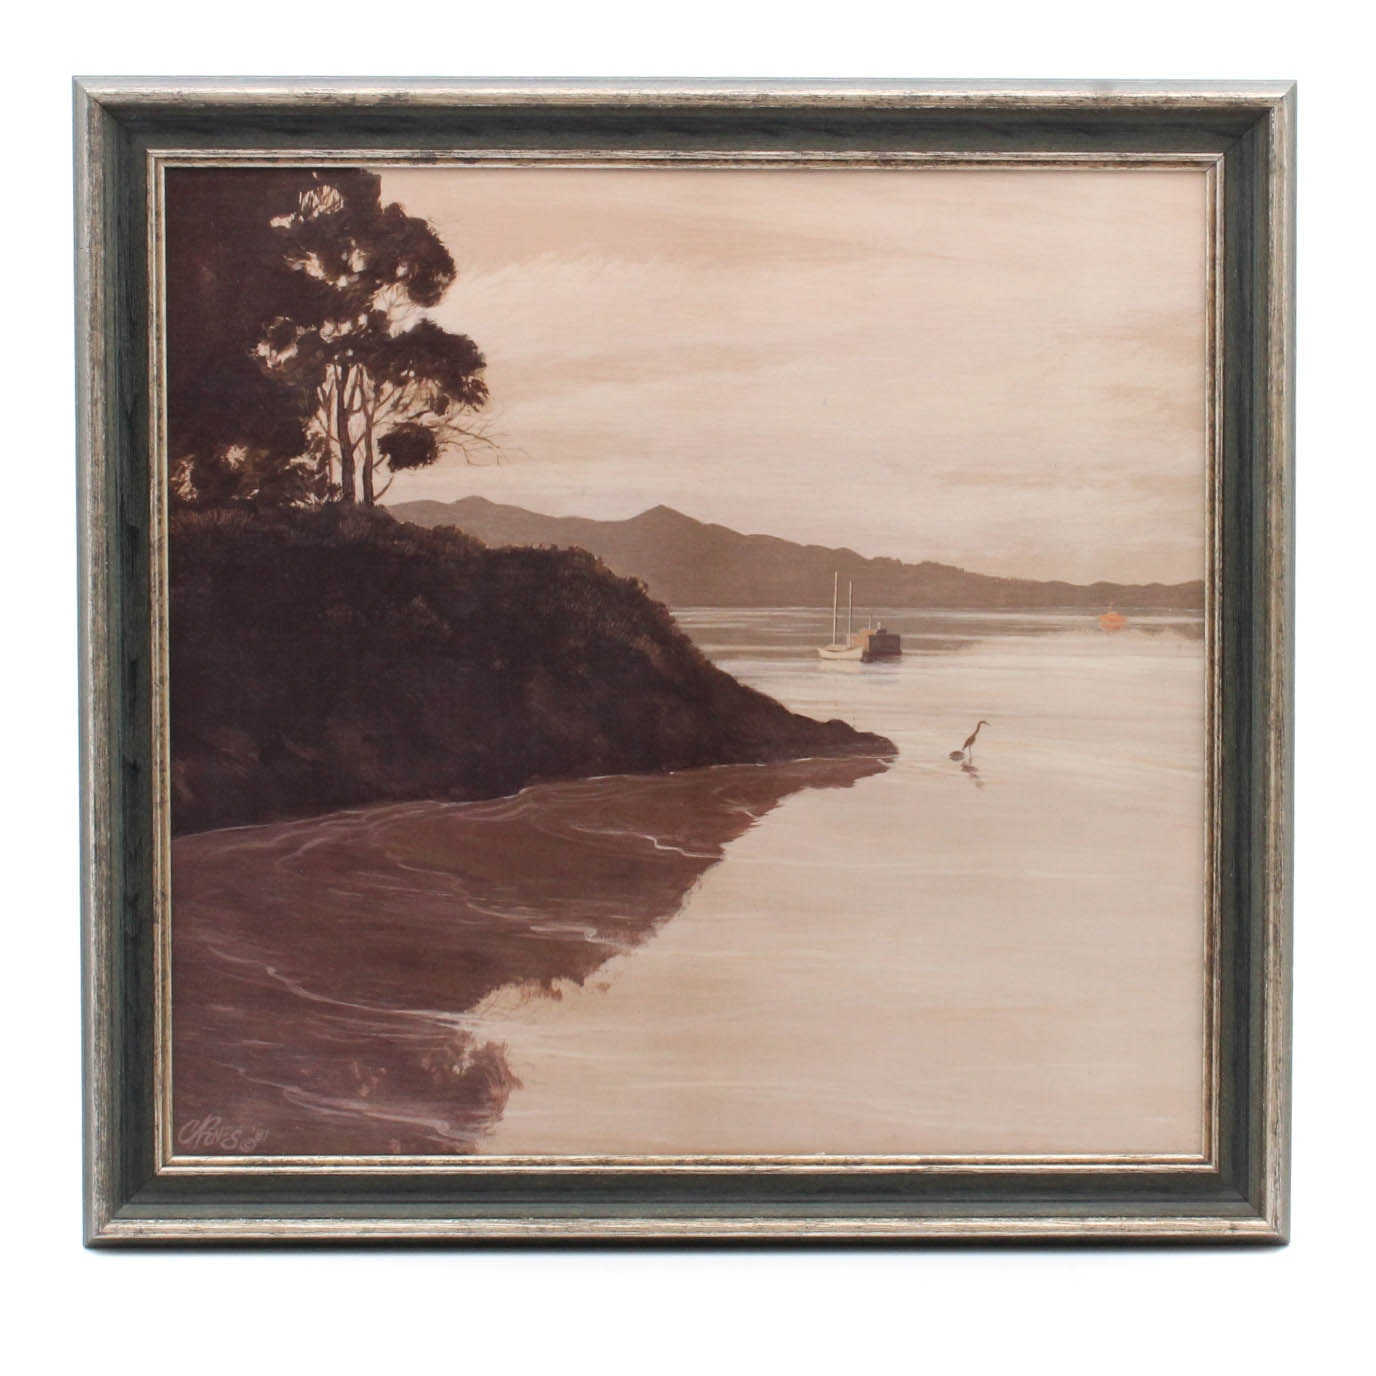 Vintage Sepia Toned Ohio River Painting